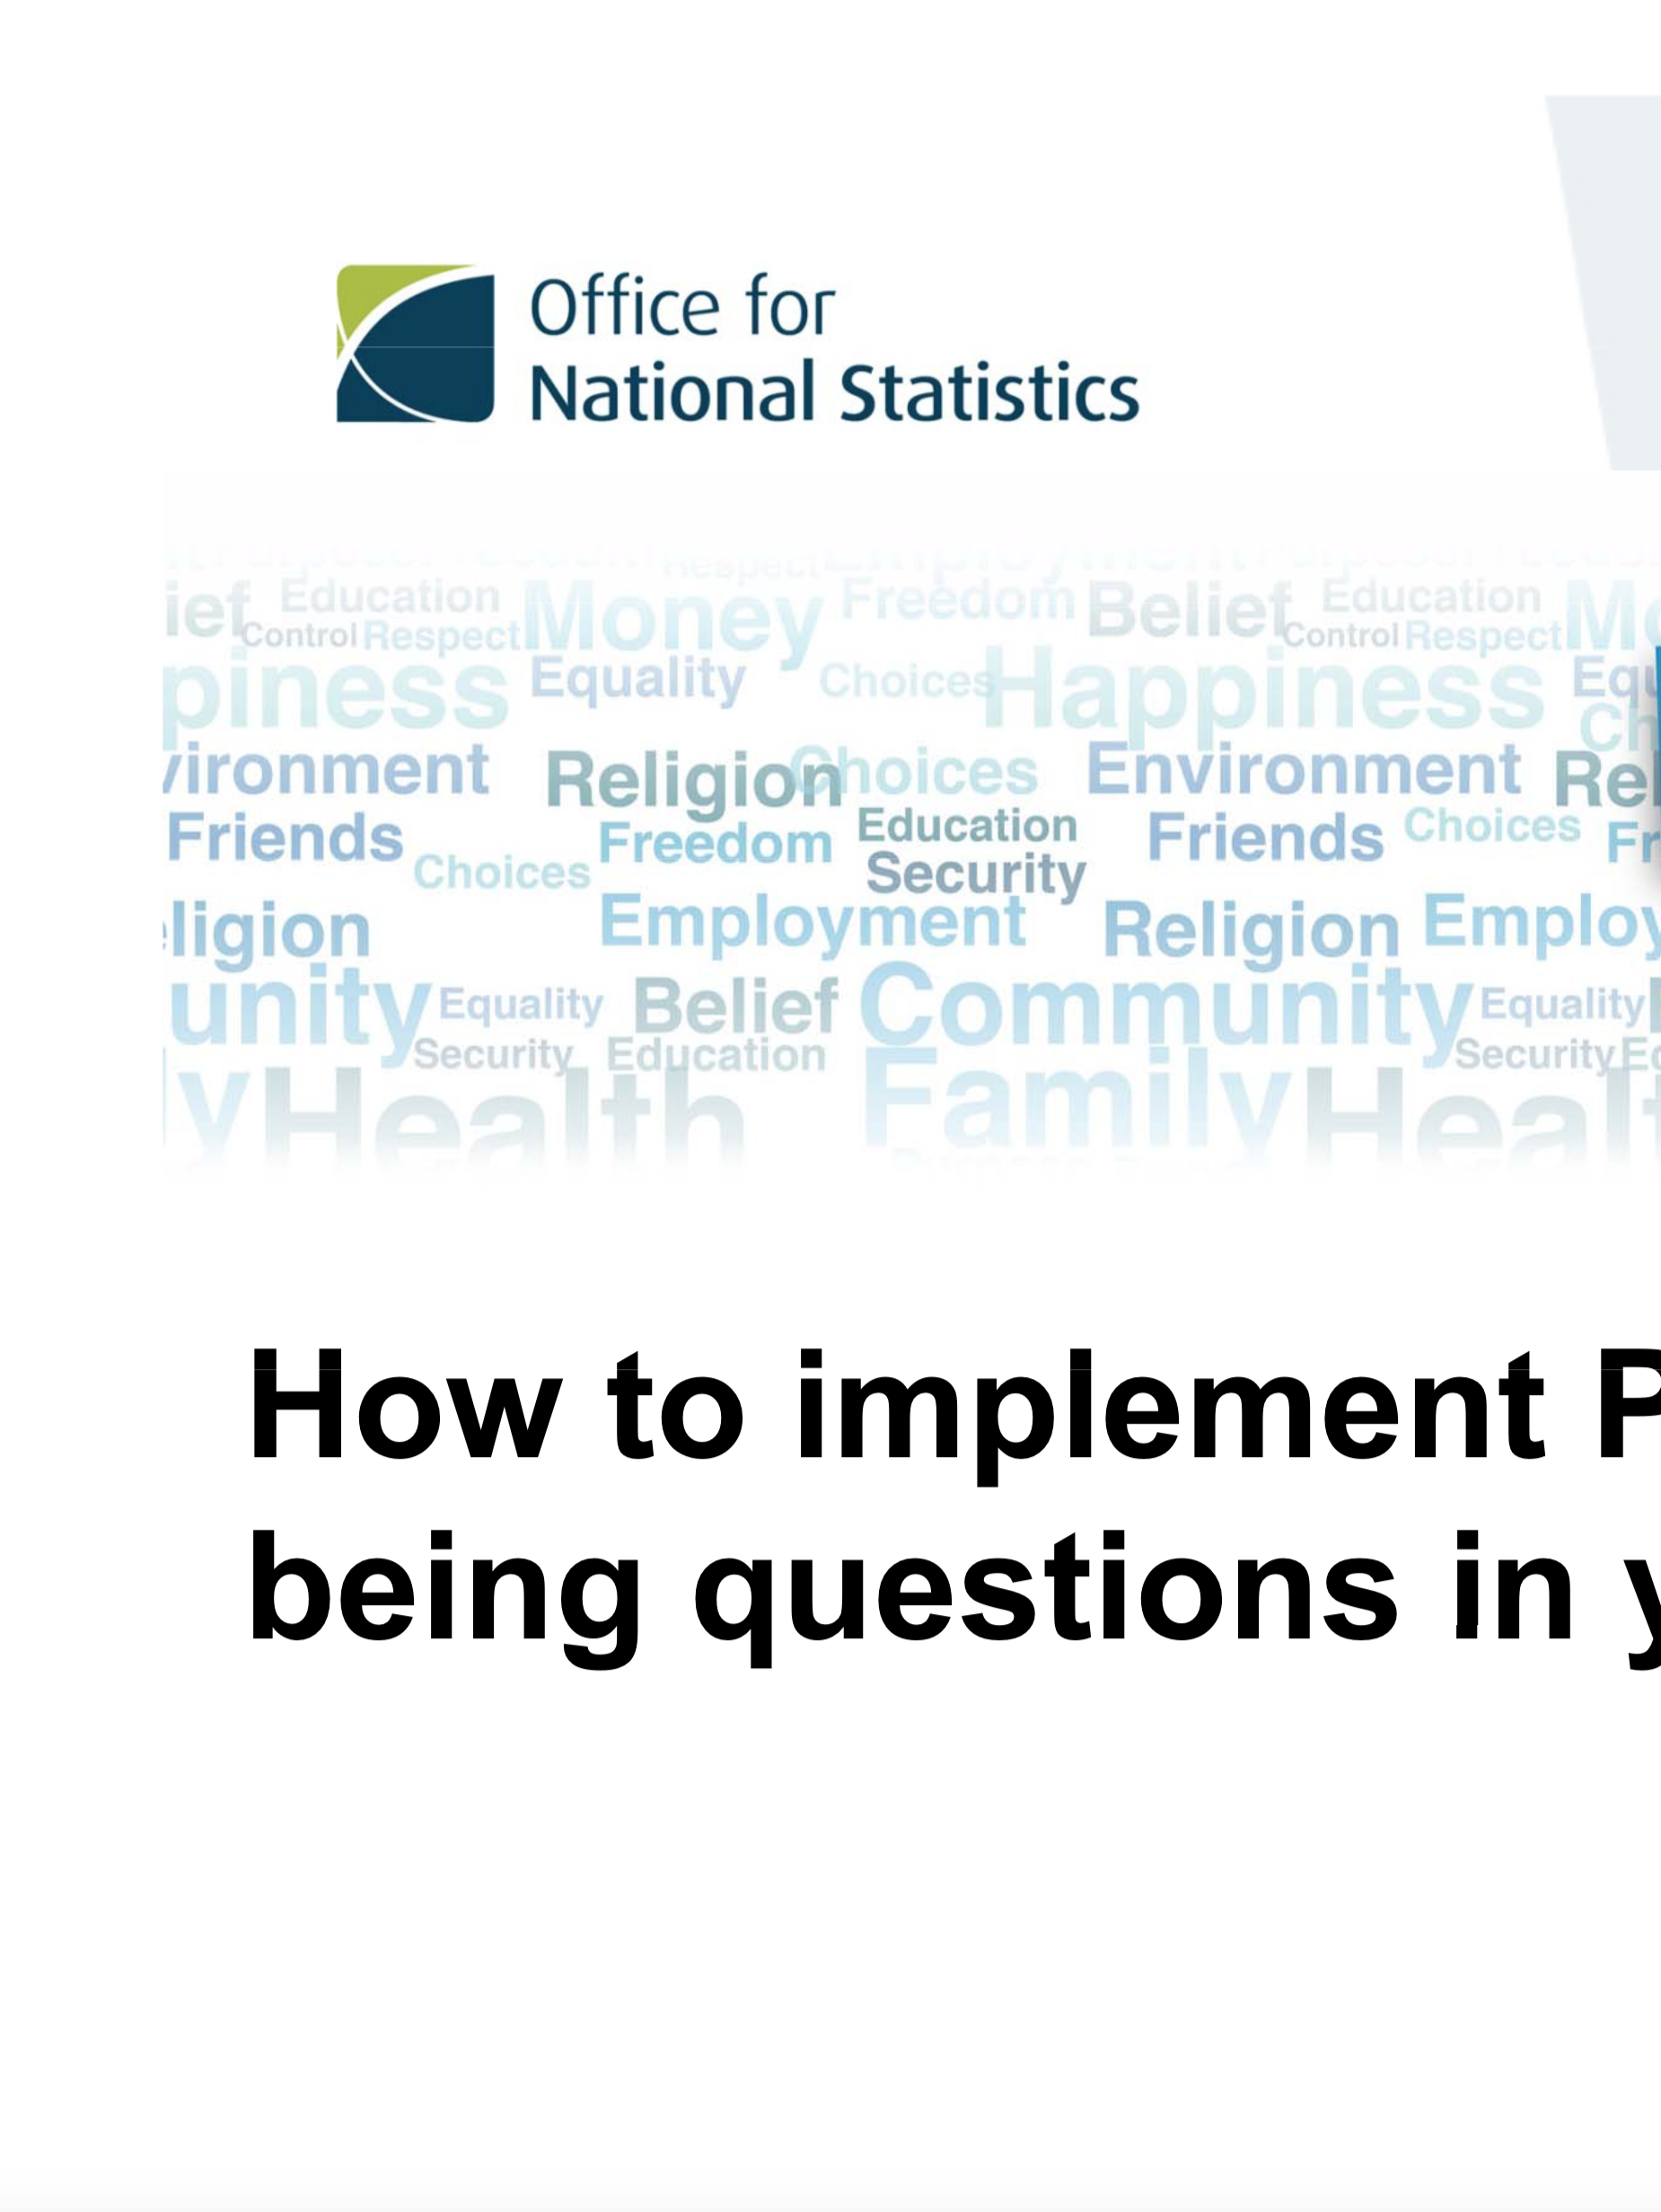 How to Implement Personal Wellbeing Questions in Your Survey